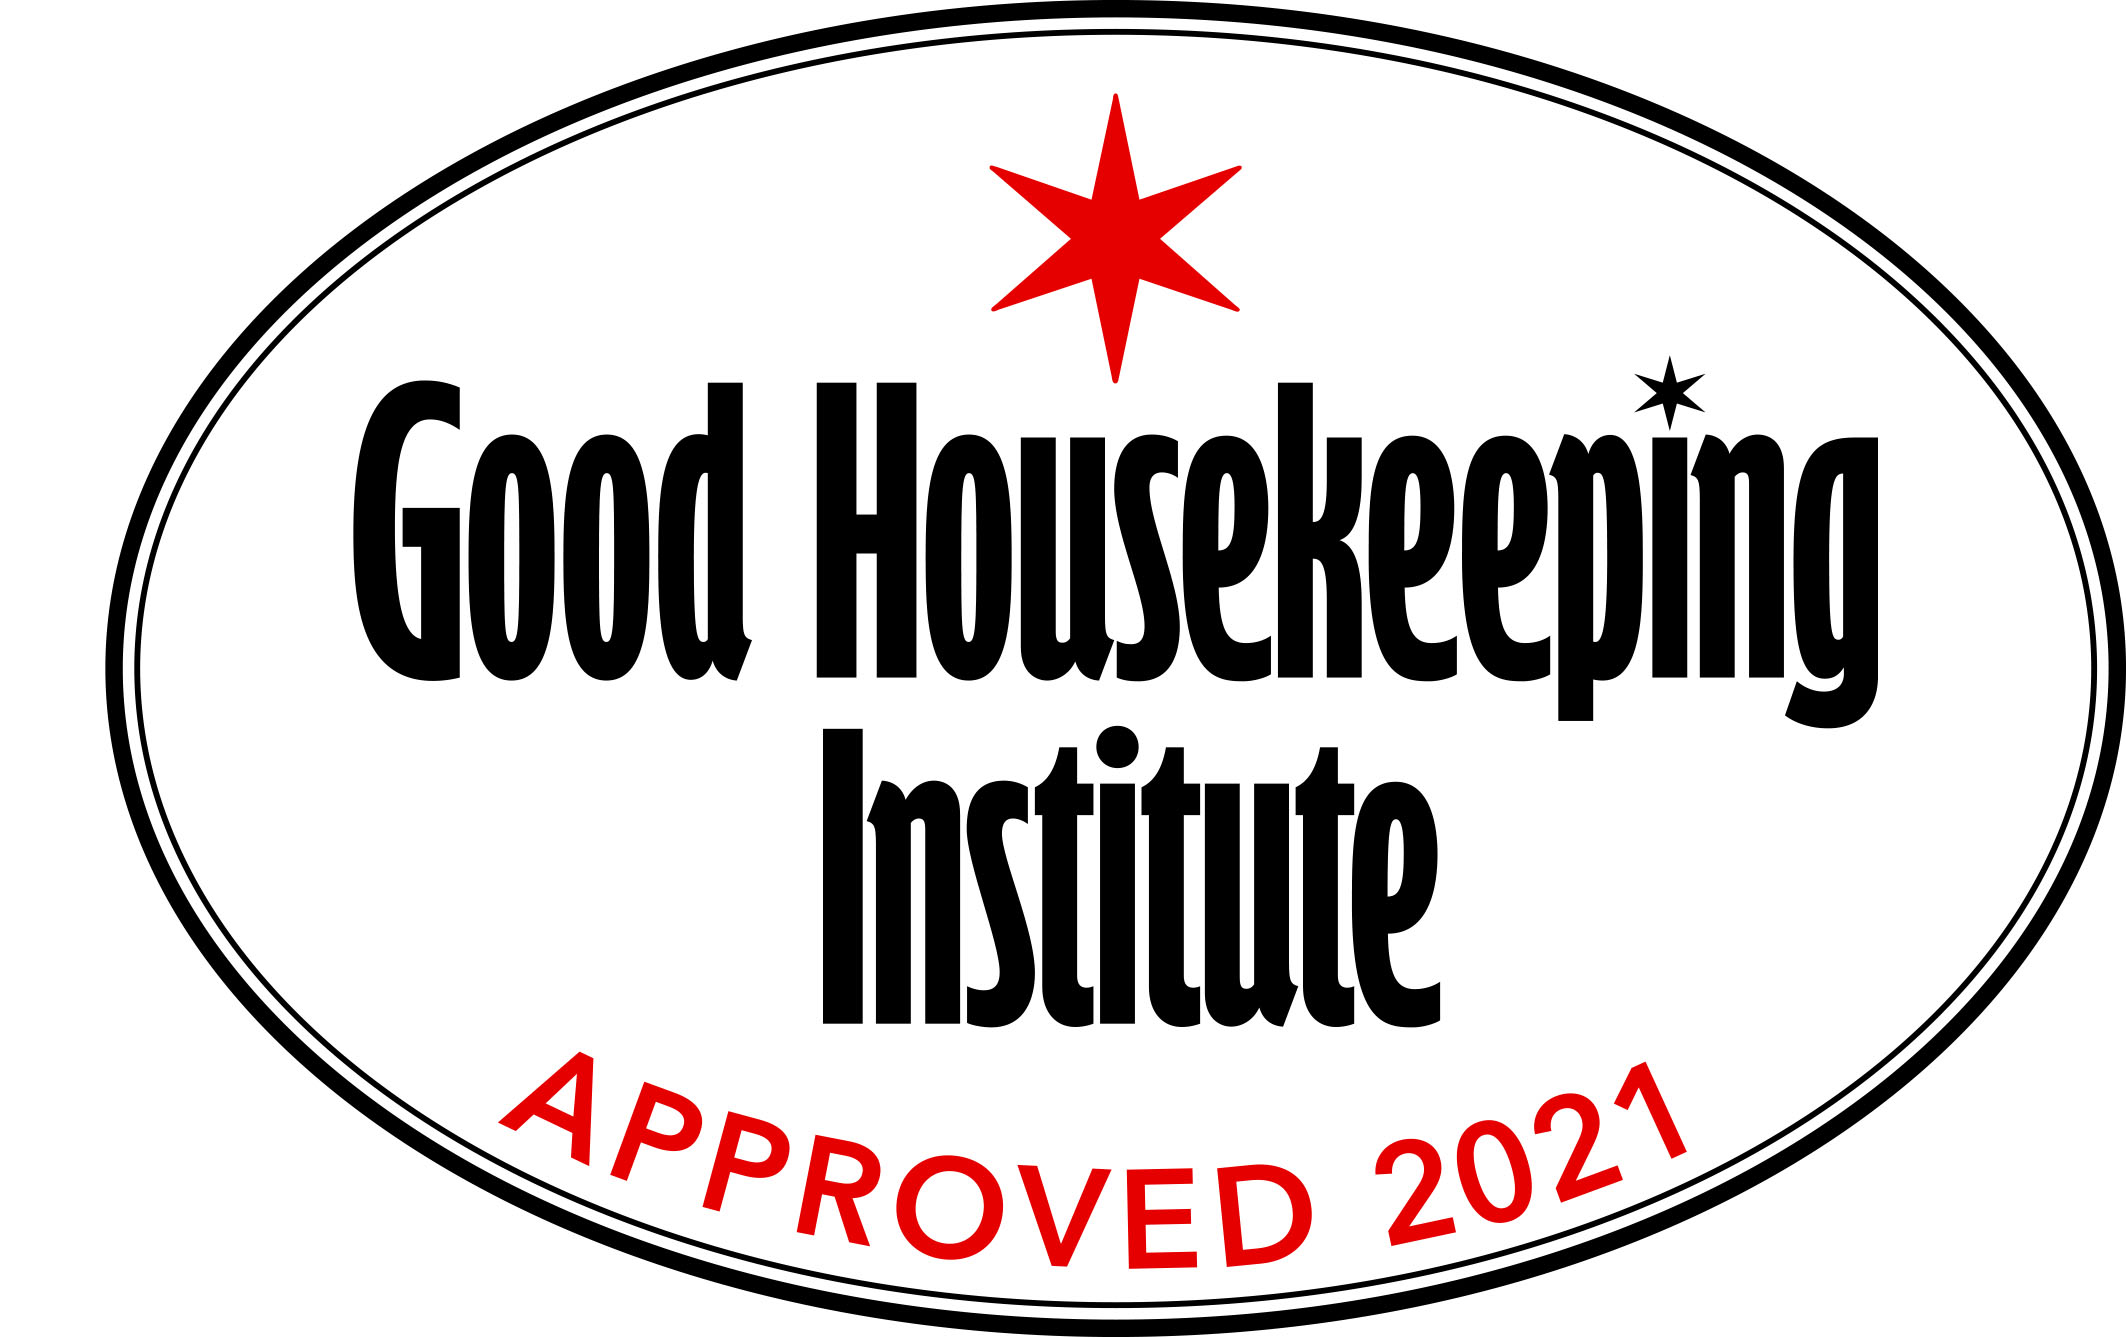 good-housekeeping-institute-approved